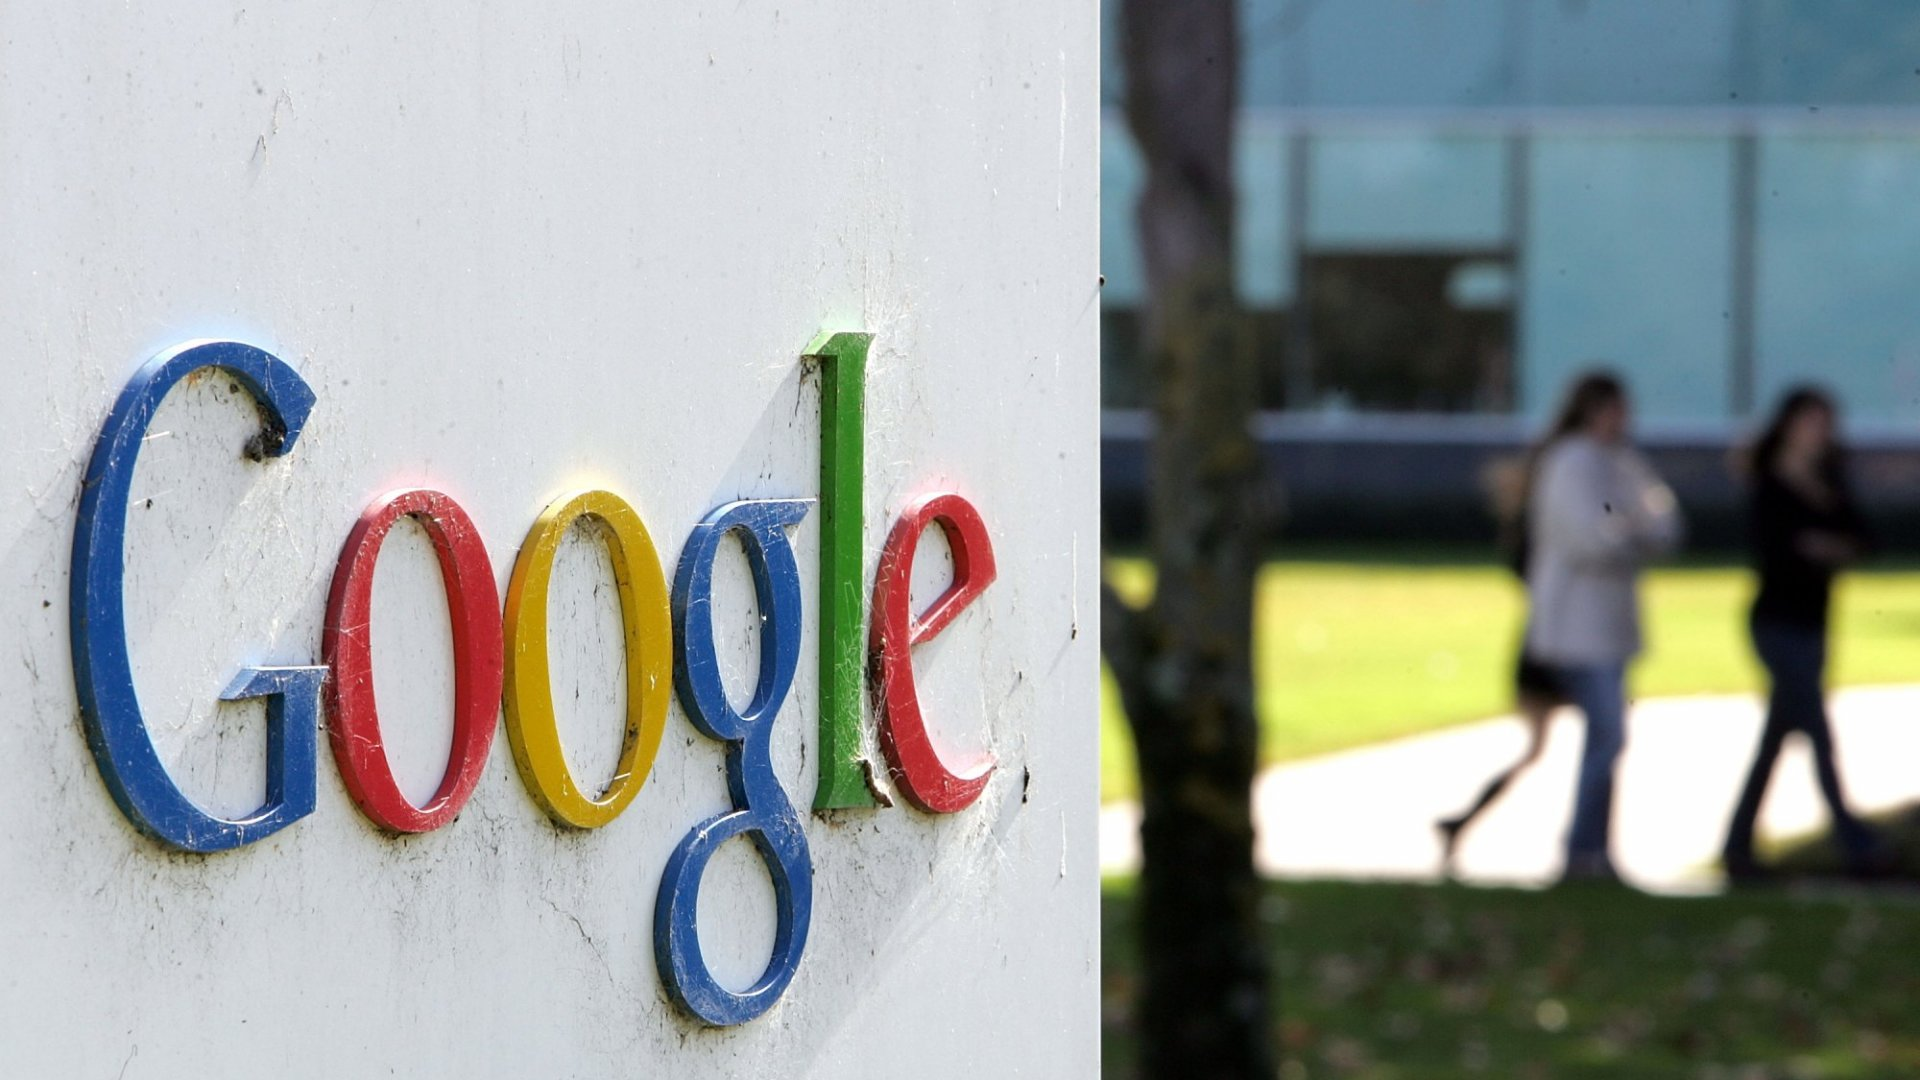 Google Has Changed Its Name (Again)